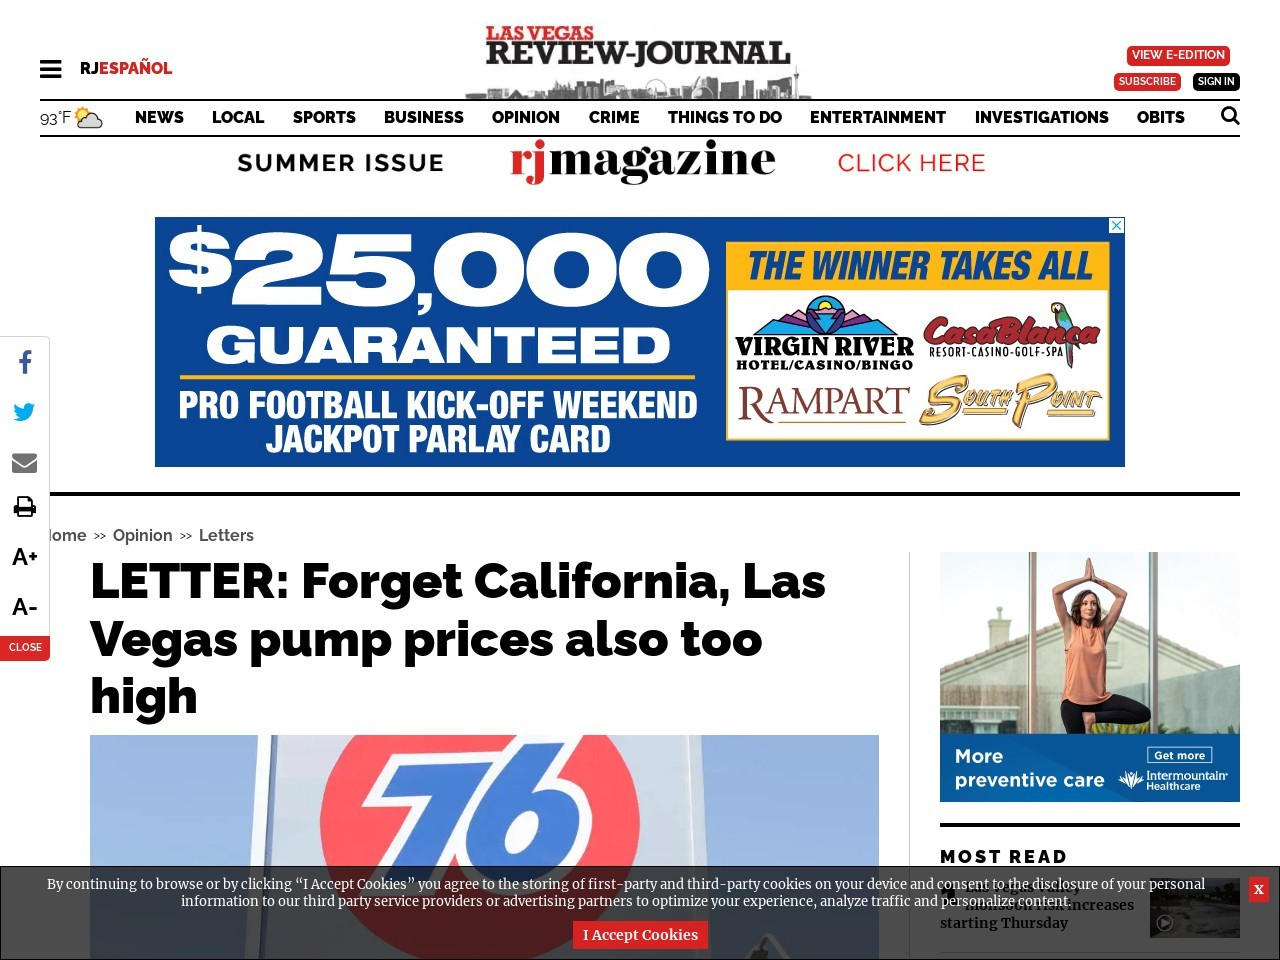 LETTER: Forget California, Las Vegas pump prices also too high